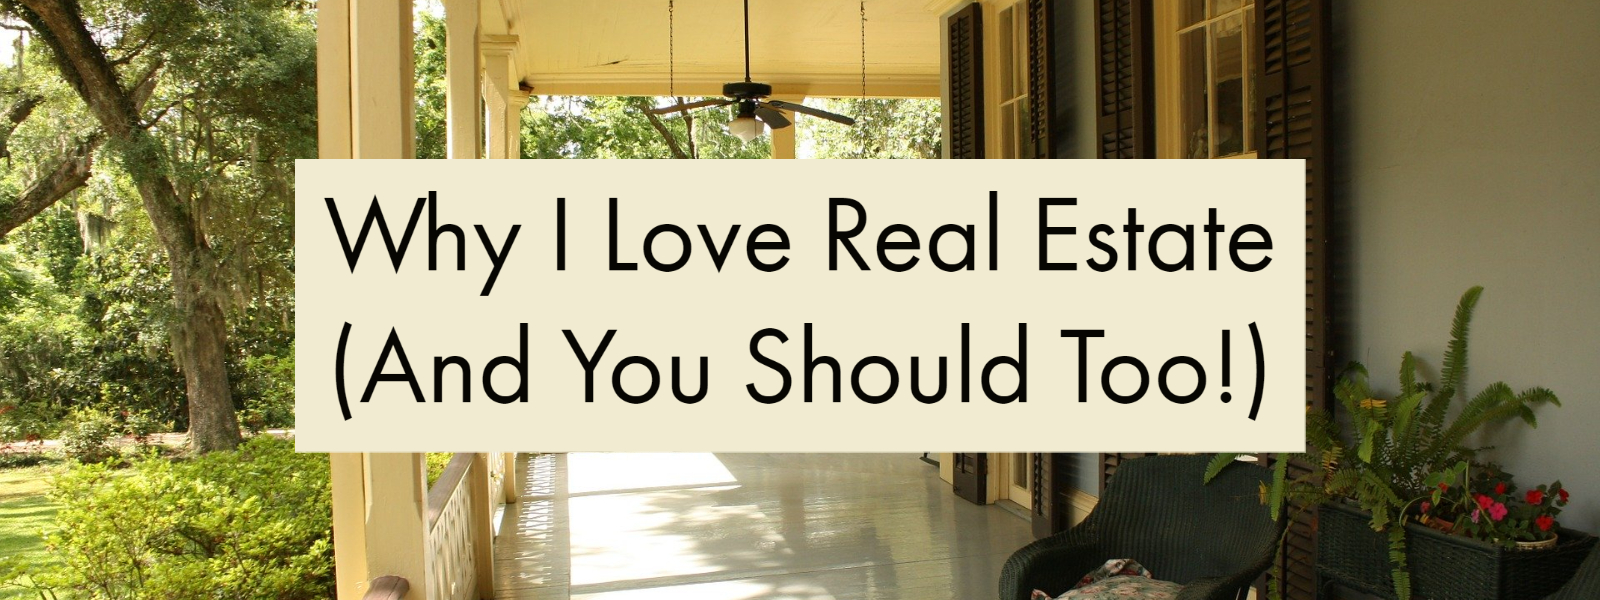 Why I Love Real Estate (And You Should Too!)